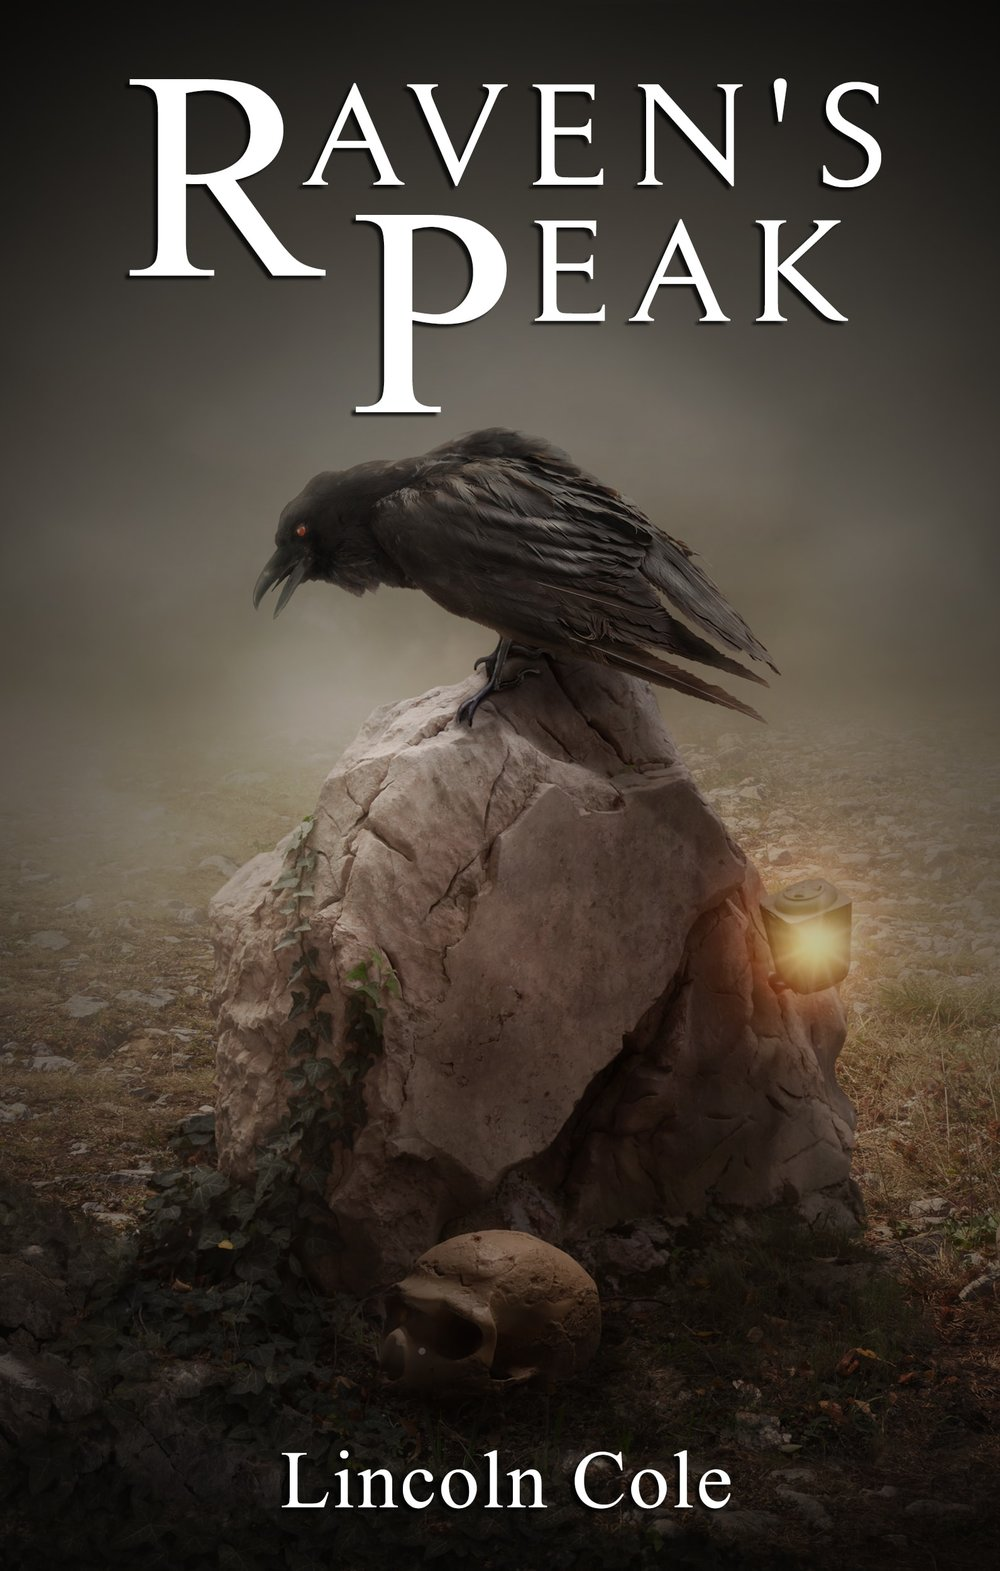 Raven's Peak - A quiet little mountain town is hiding a big problem. When the townsfolk of Raven's Peak start acting crazy, Abigail Dressler is called upon to discover the root of the evil affecting people. She uncovers a demonic threat unlike any she's ever faced and finds herself in a fight just to stay alive.Abigail rescues Haatim Arison from a terrifying fate and discovers that he has a family legacy in the supernatural that he knows nothing about. Now she's forced to protect him, which is easy, but also to trust him if she wants to save the townsfolk of Raven's Peak. Trust, however, is something hard to have for someone who grew up living on the knife's edge of danger.Can they discover the cause of the town's insanity and put a stop to it before it is too late?